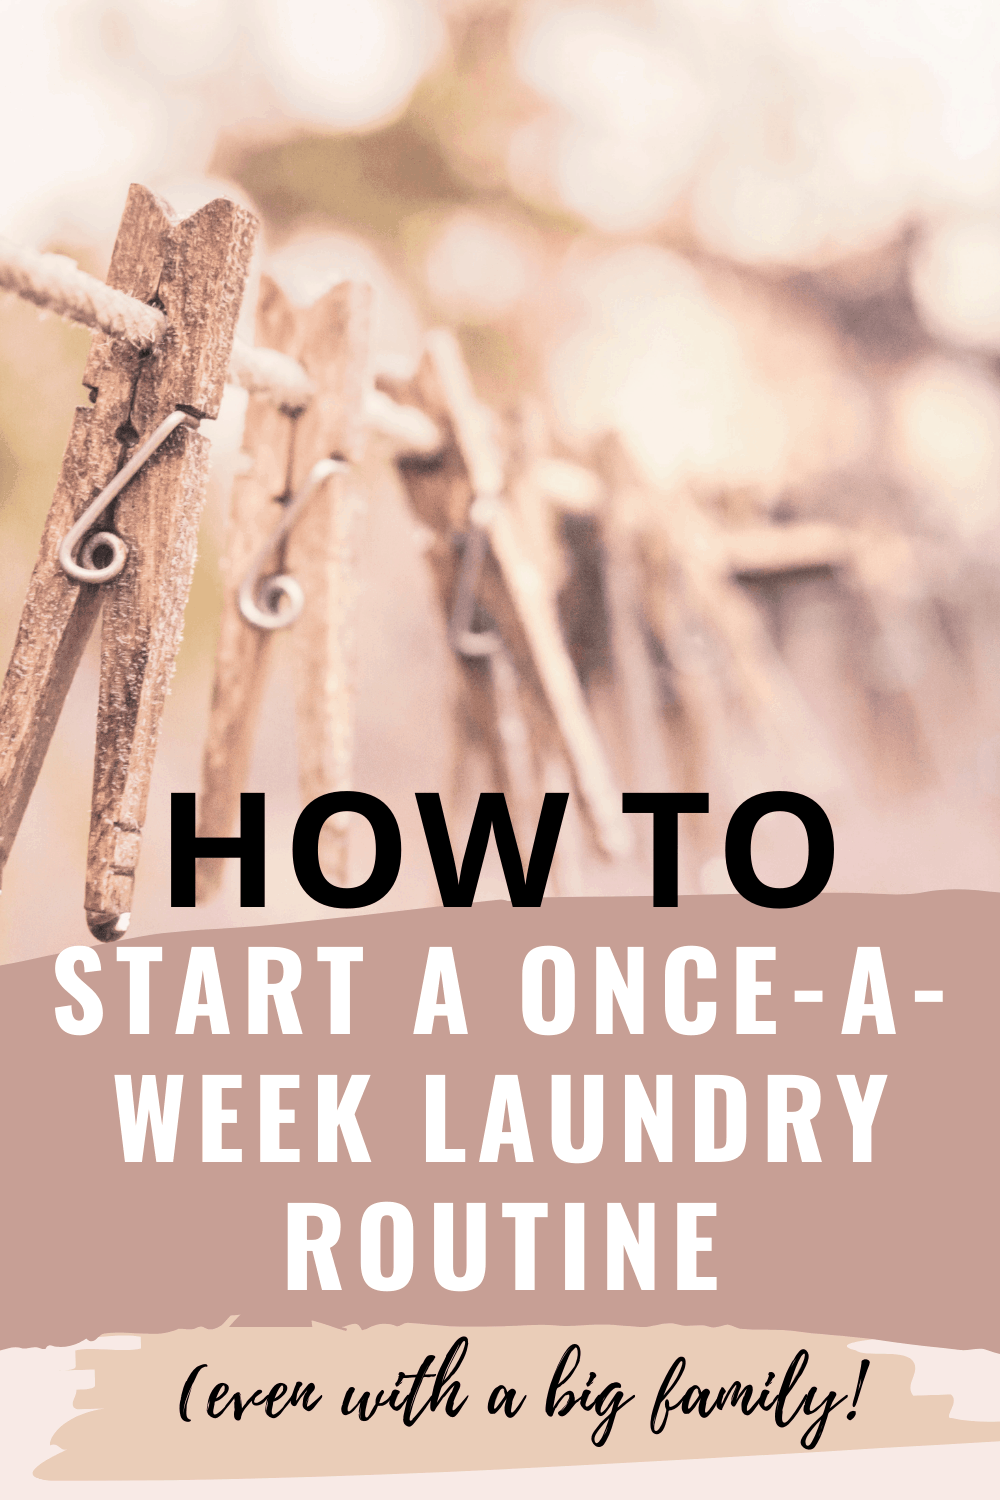 How to Make the Switch to a Once-a-Week Family Laundry Schedule